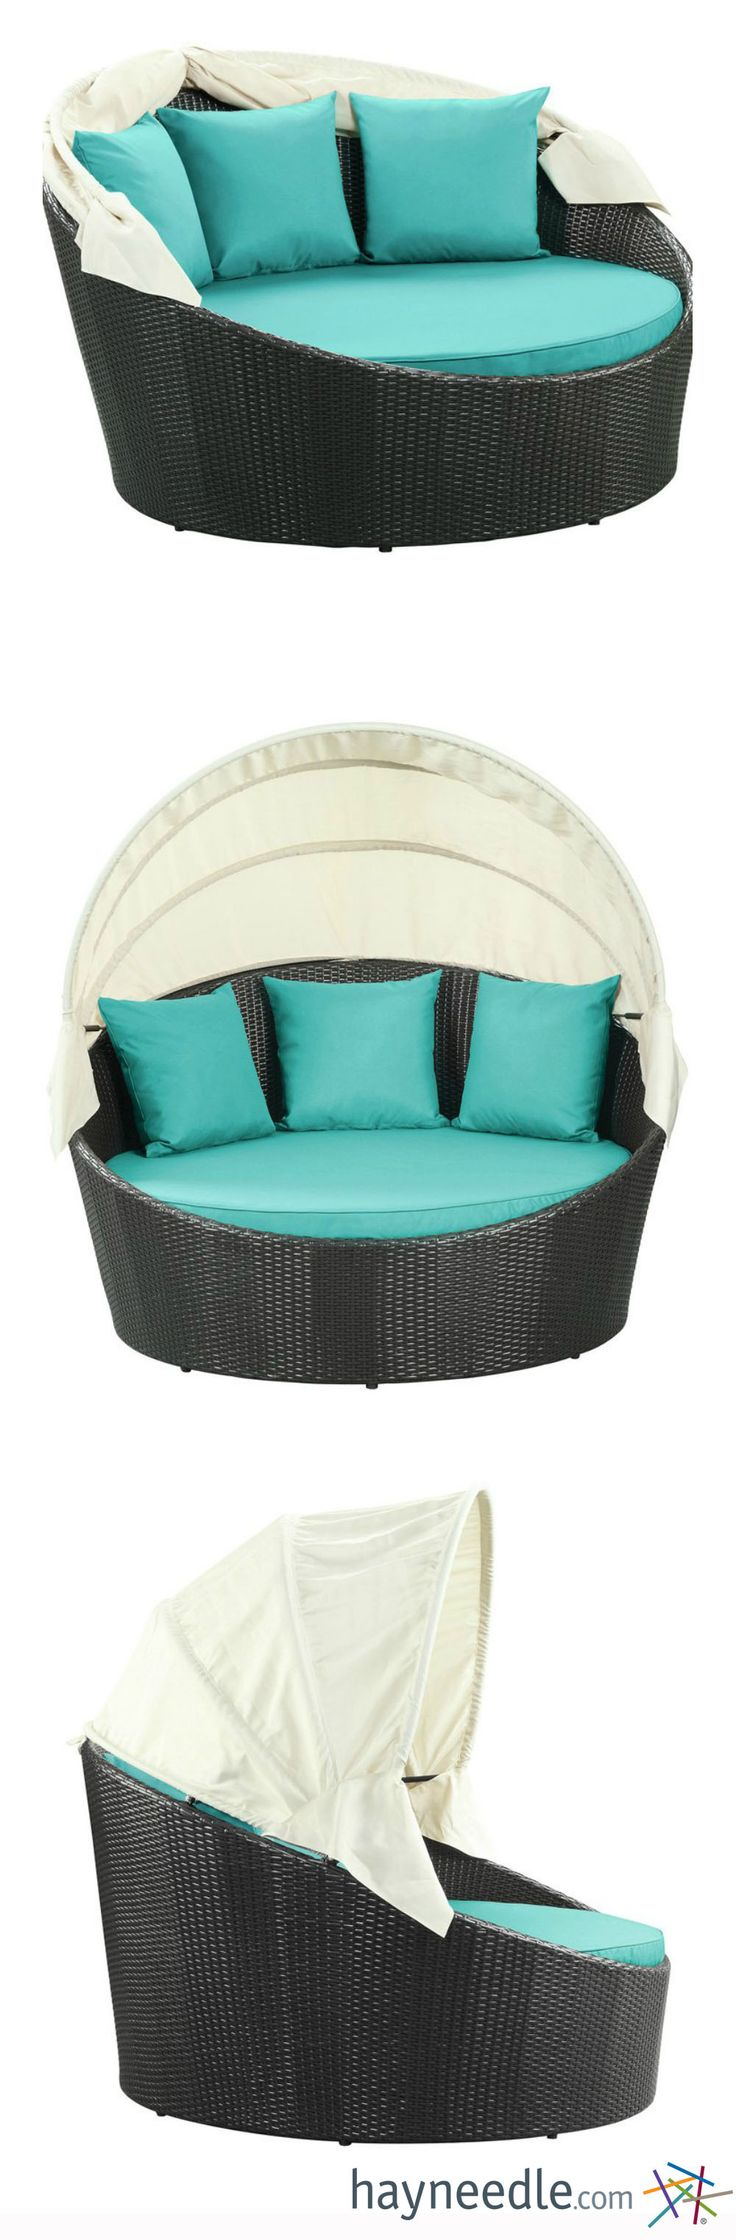 Forget those old rickety lounge chairs that weren't that comfy anyway - the Siesta Wicker Canopy Daybed takes your outdoor siestas to a whole new level of snooze. Cozy up with the included three pillows and cushion - and don't forget to pull up the retractable canopy if you need a little shade.